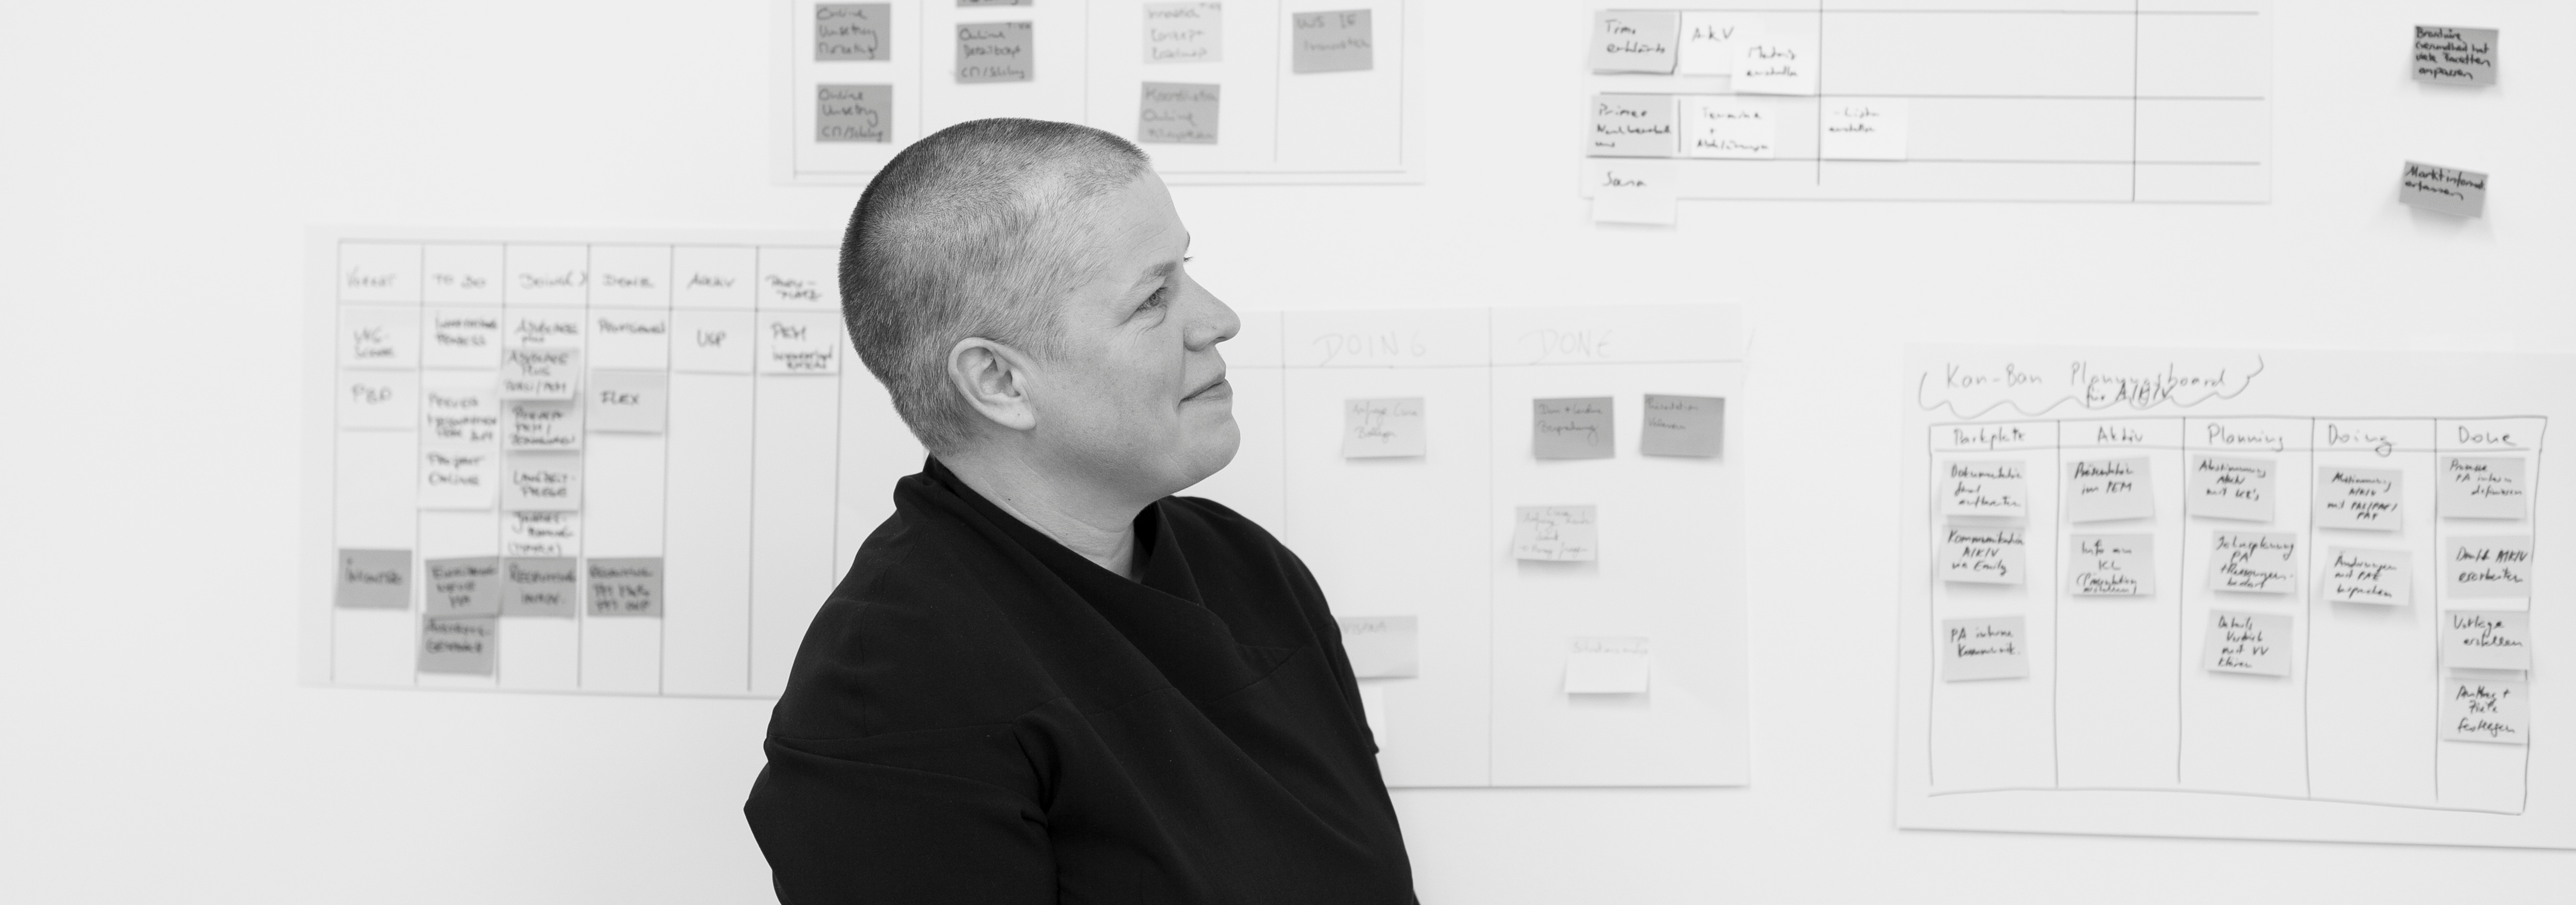 Black and white image of lady with short hair looking at a white board covered in post it notes